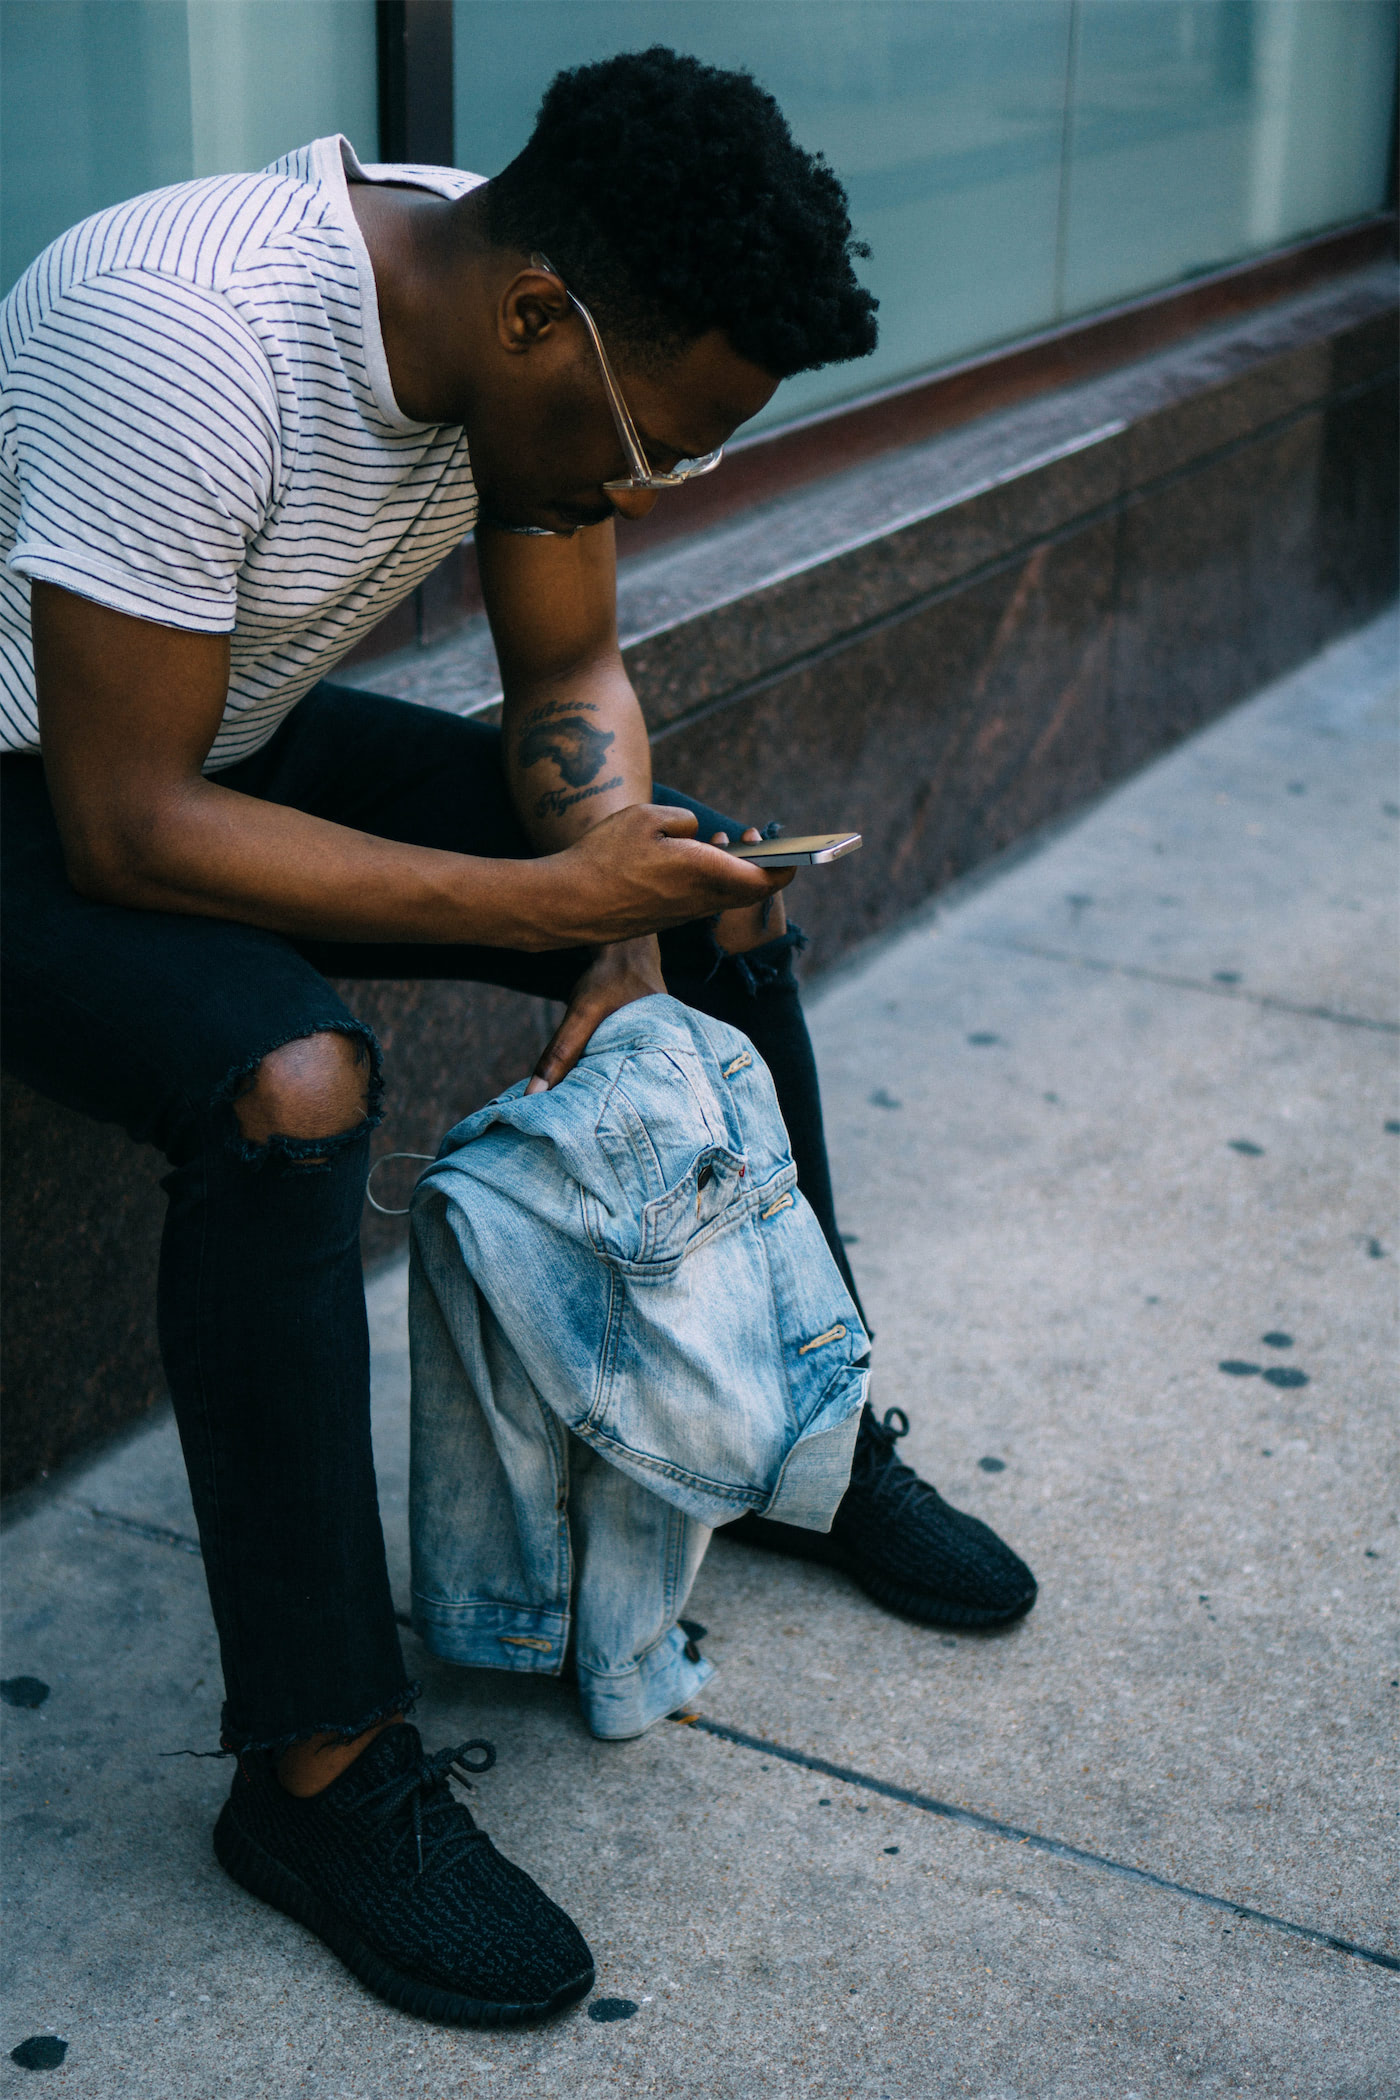 Man sitting on bench leaning forward and reading off his phone